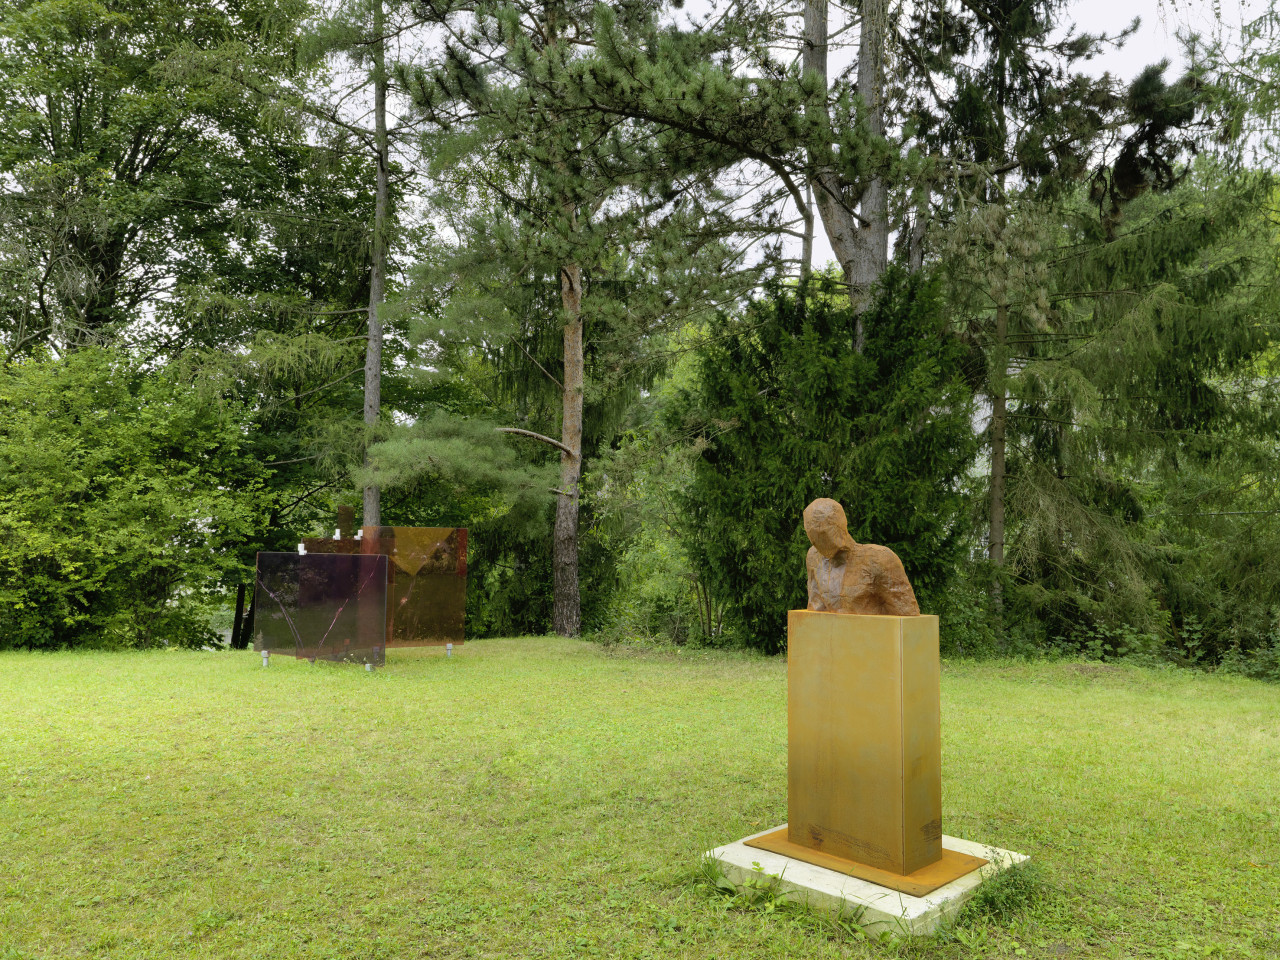 Sculpture Garden, Installation view: Thomas Baumann & Rory Menage, 2019